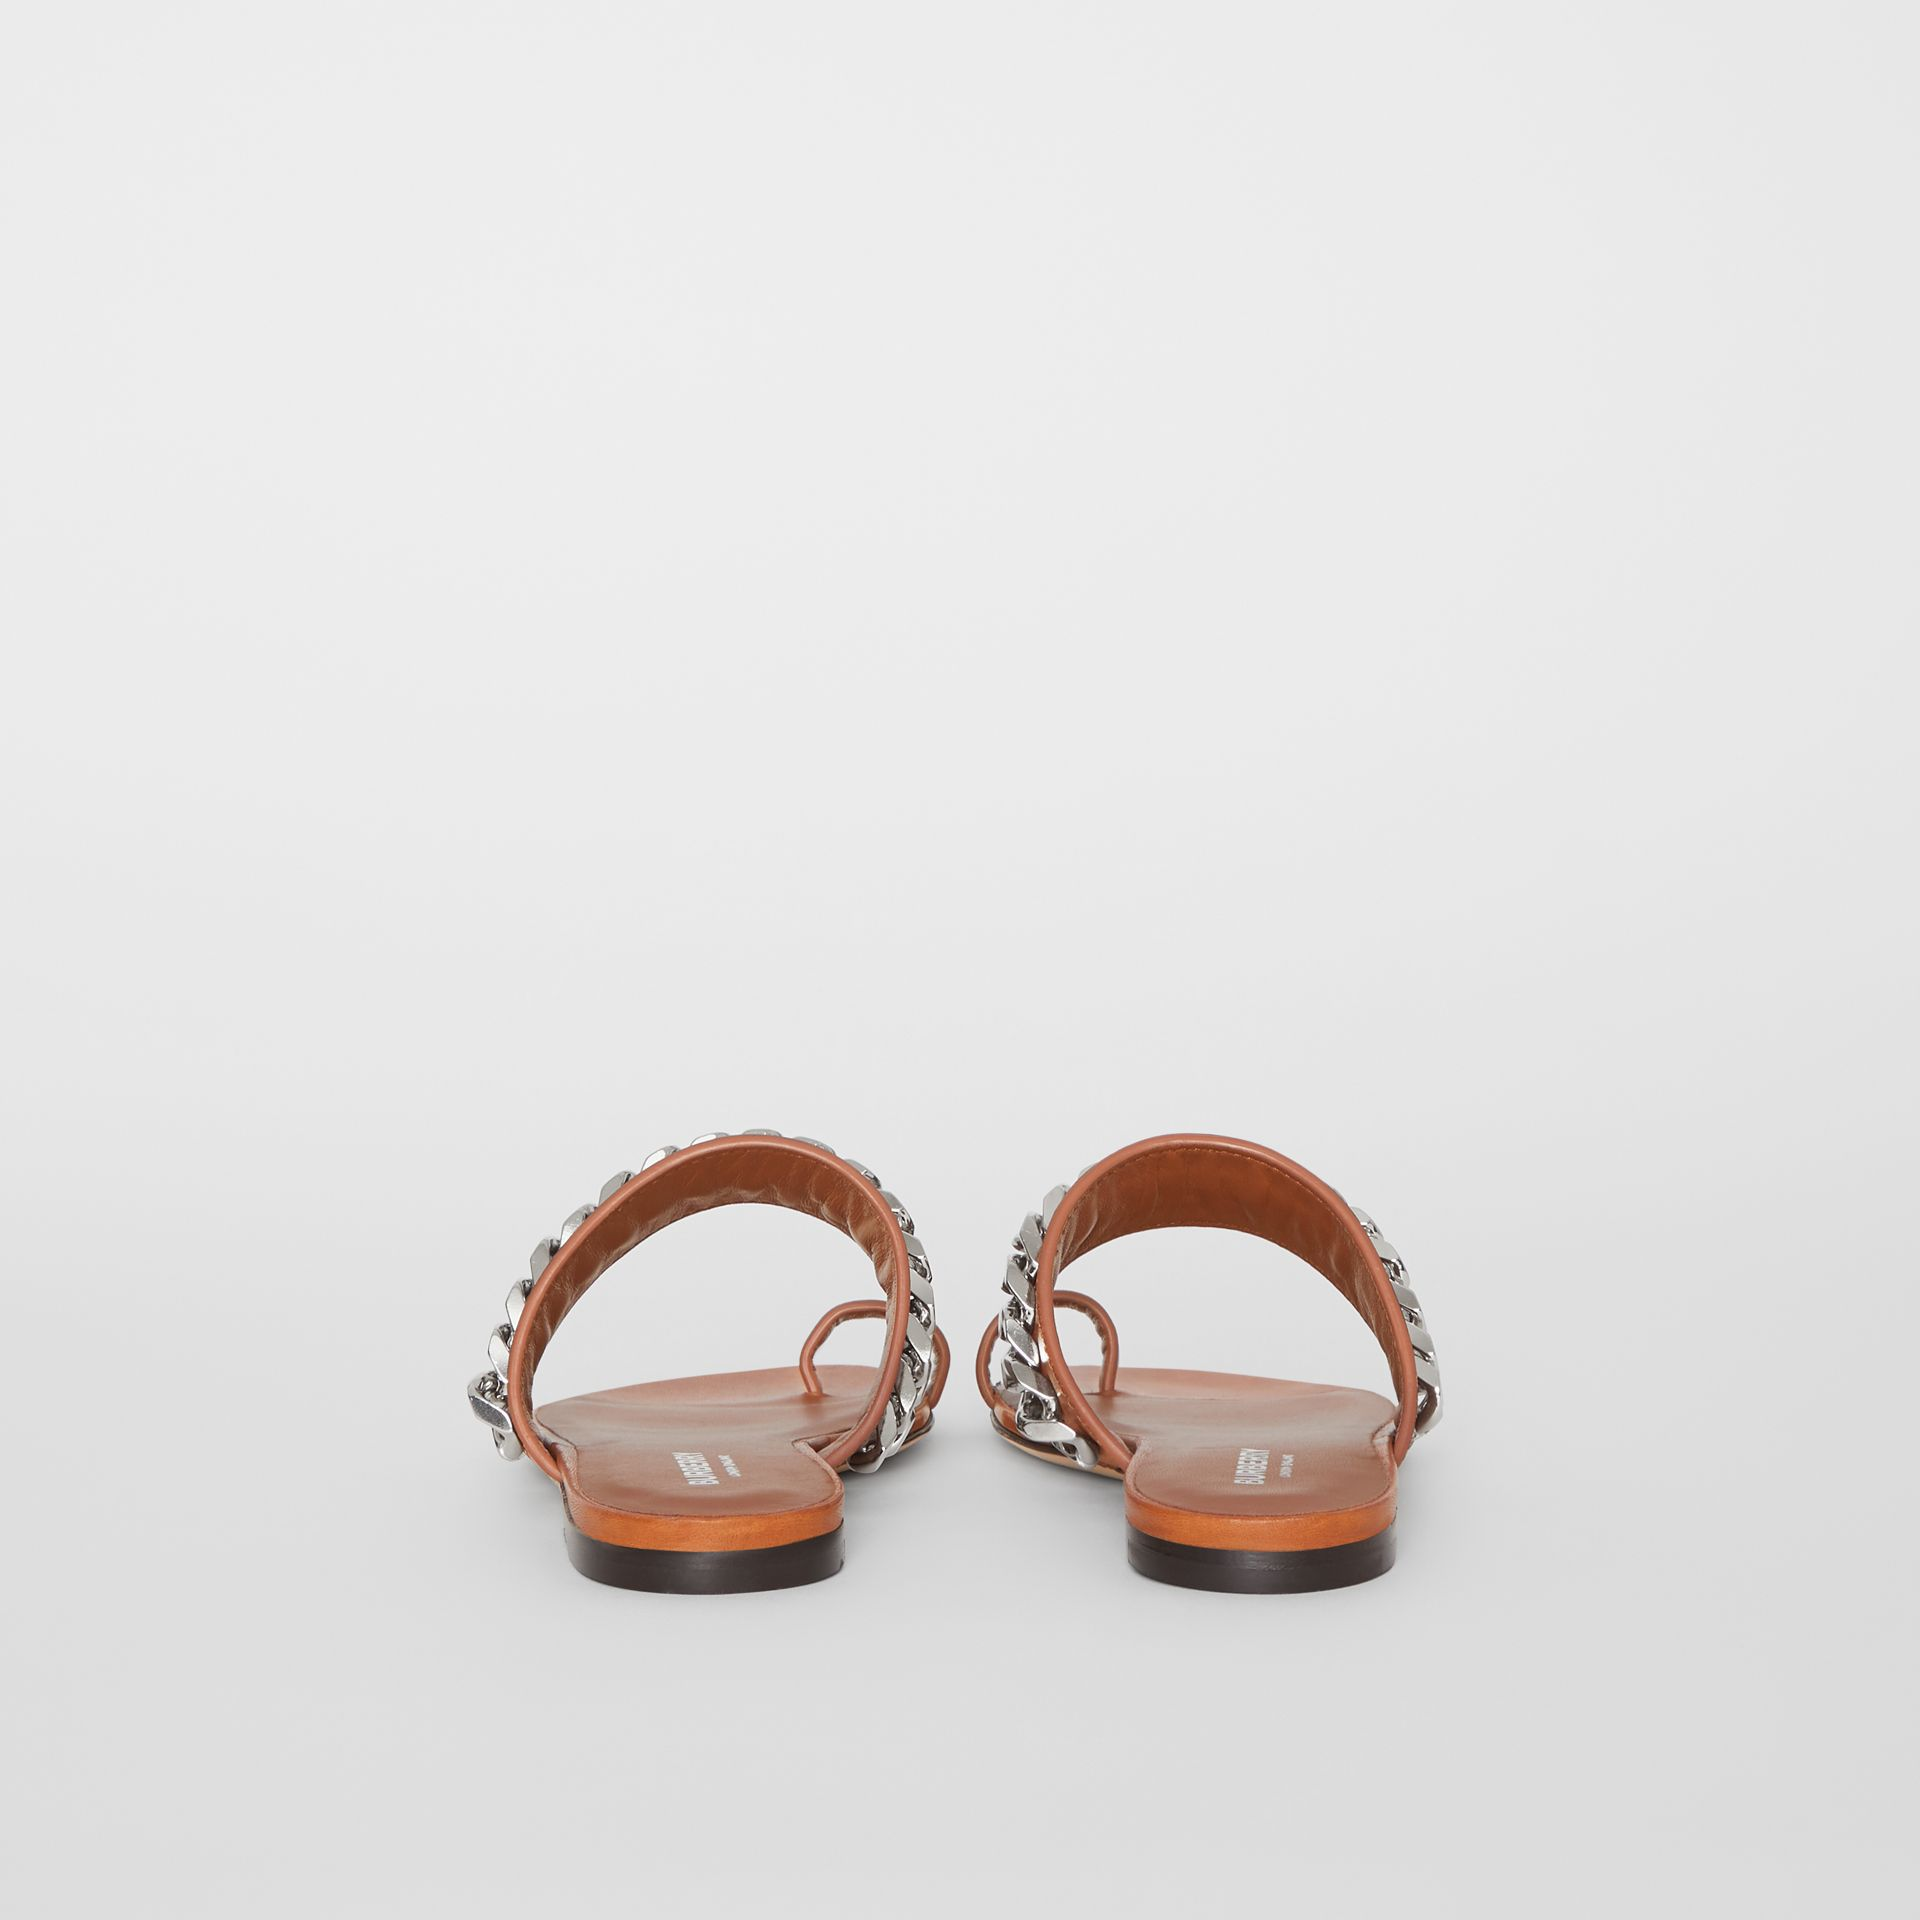 Chain Detail Leather Sandals in Amber - Women | Burberry - gallery image 4